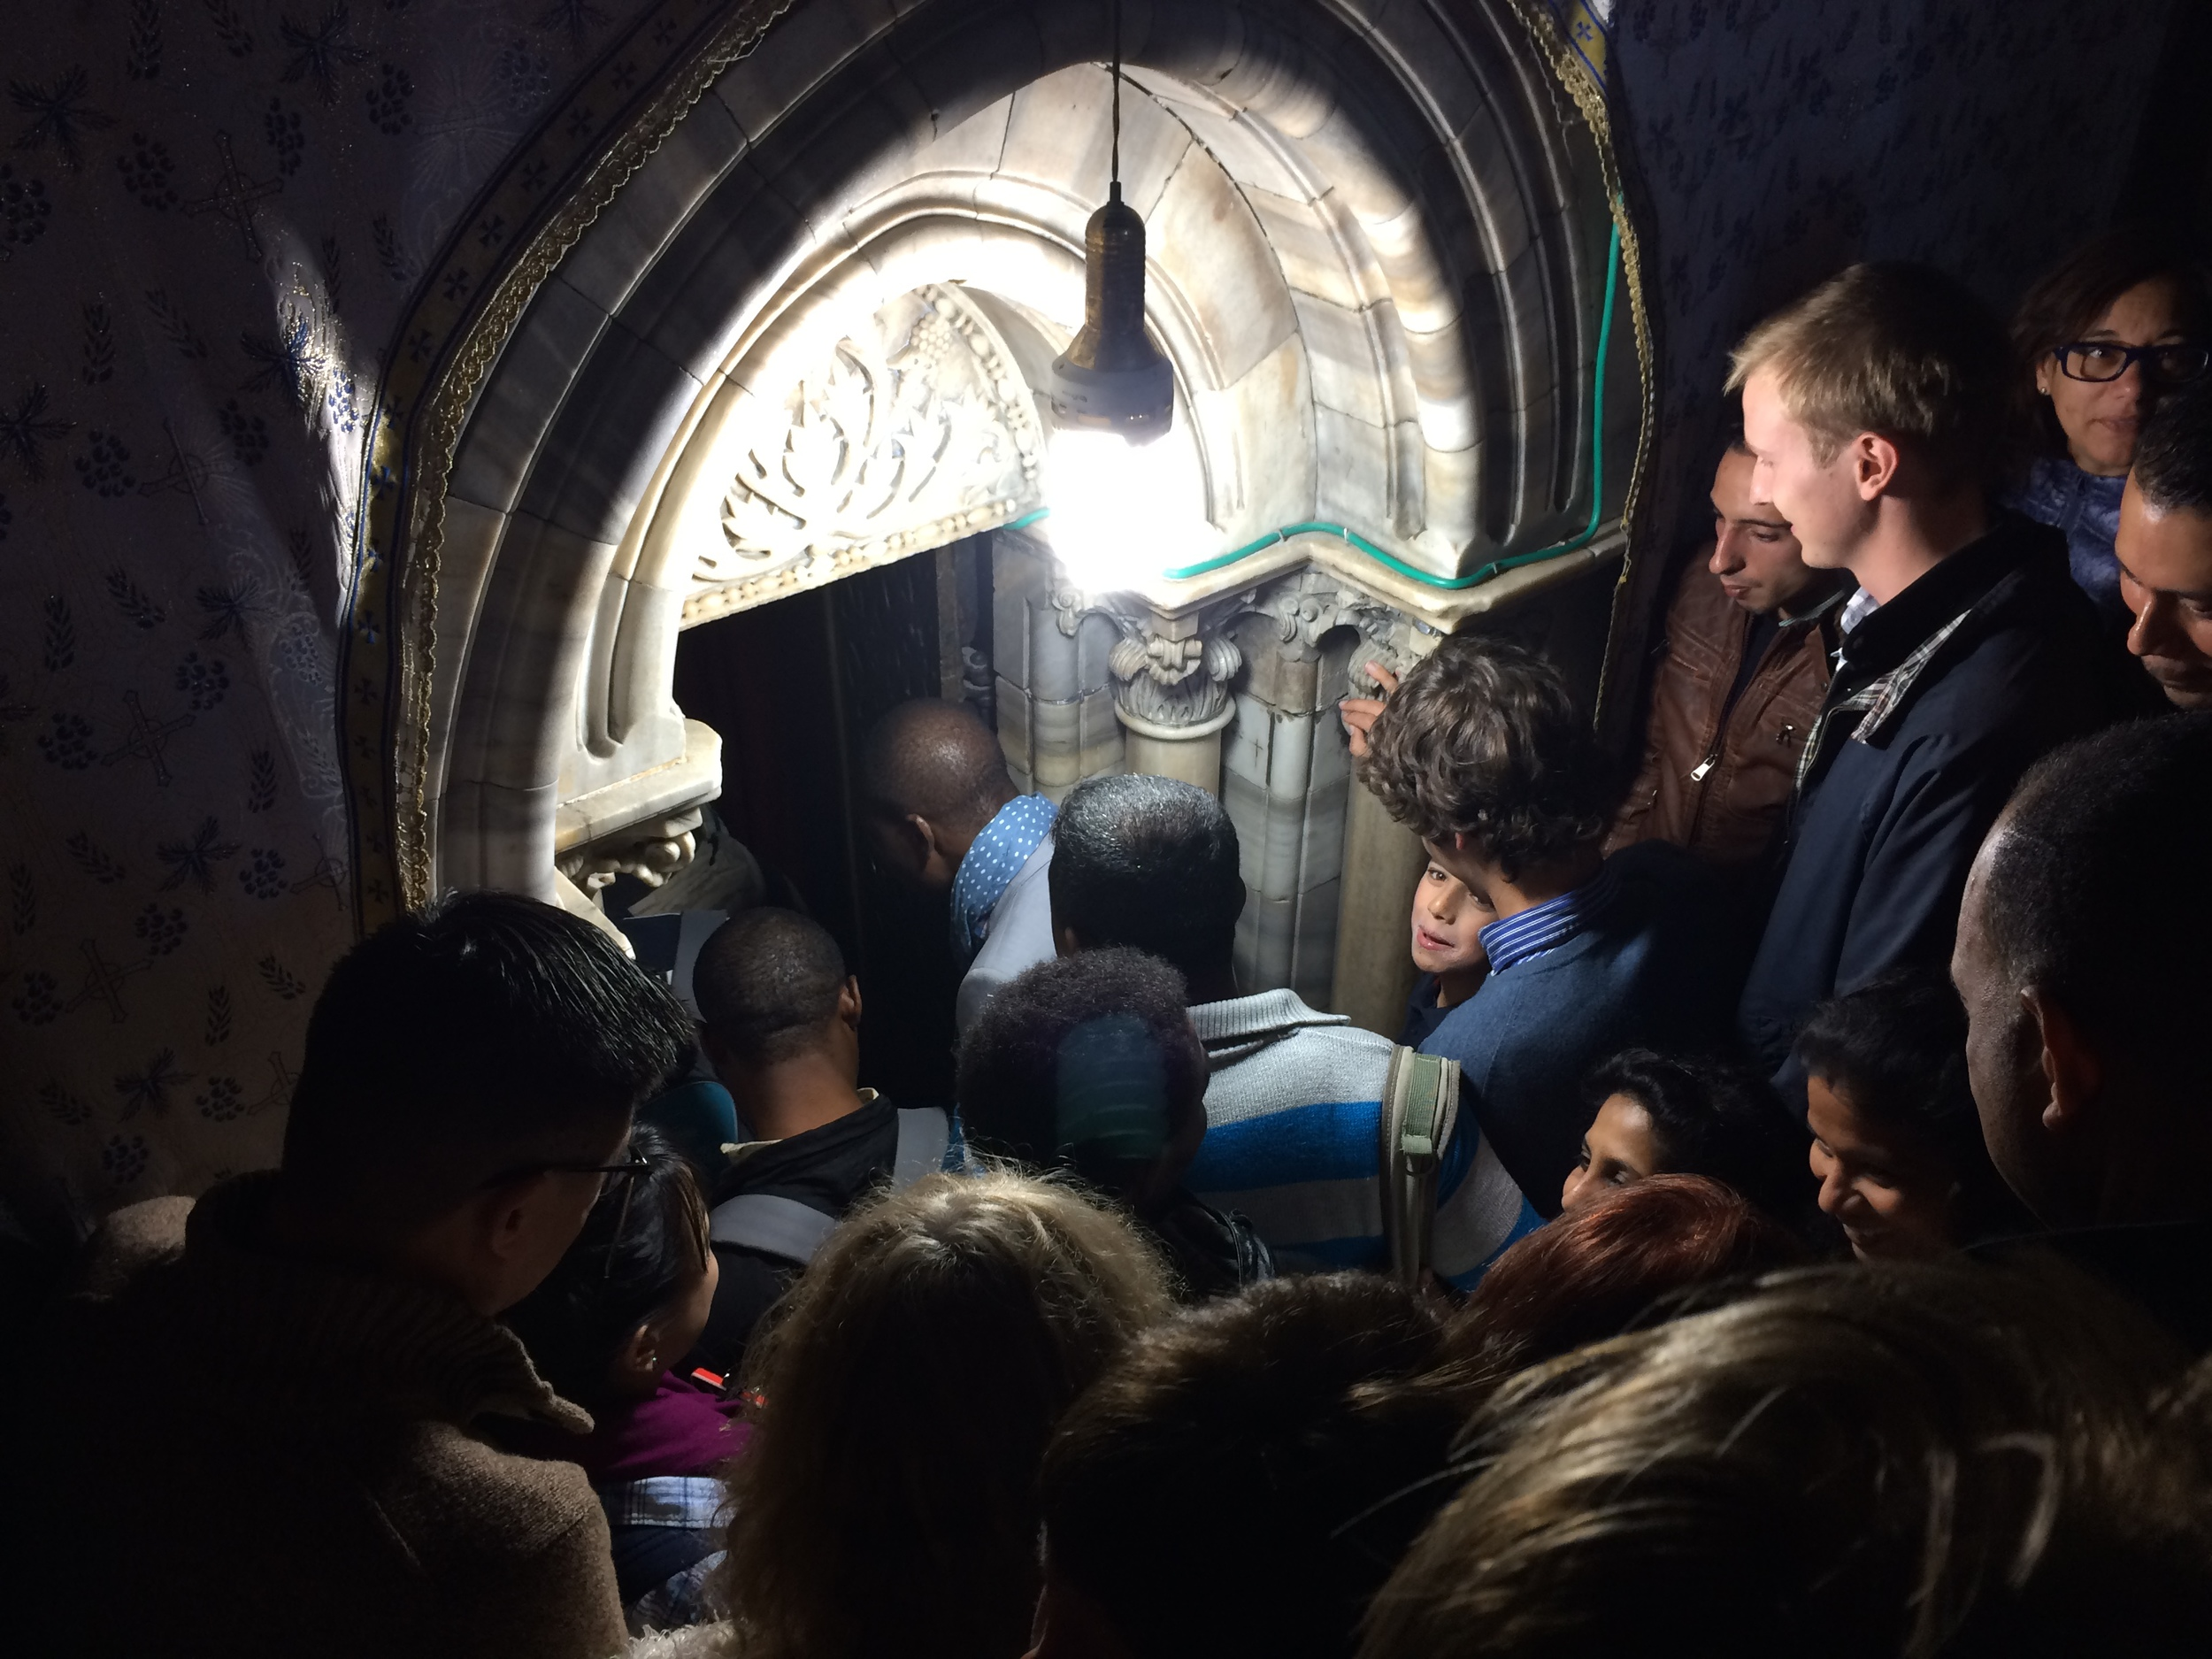 The mess of people all trying to get into the chamber downstairs with the birthplace of Jesus.